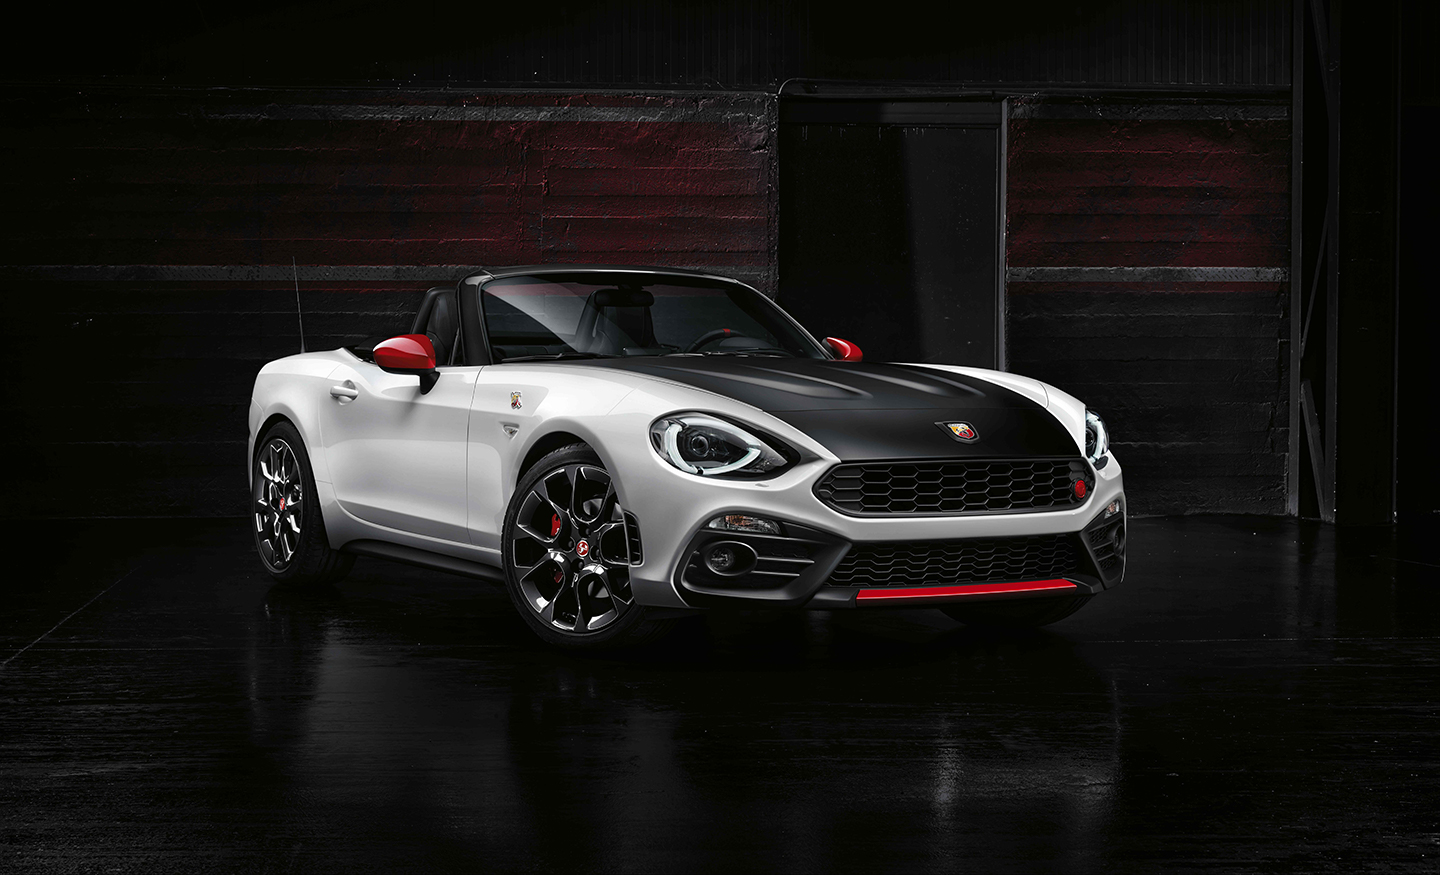 Abarth 124 spider set for first UK appearance at Hall of Fame